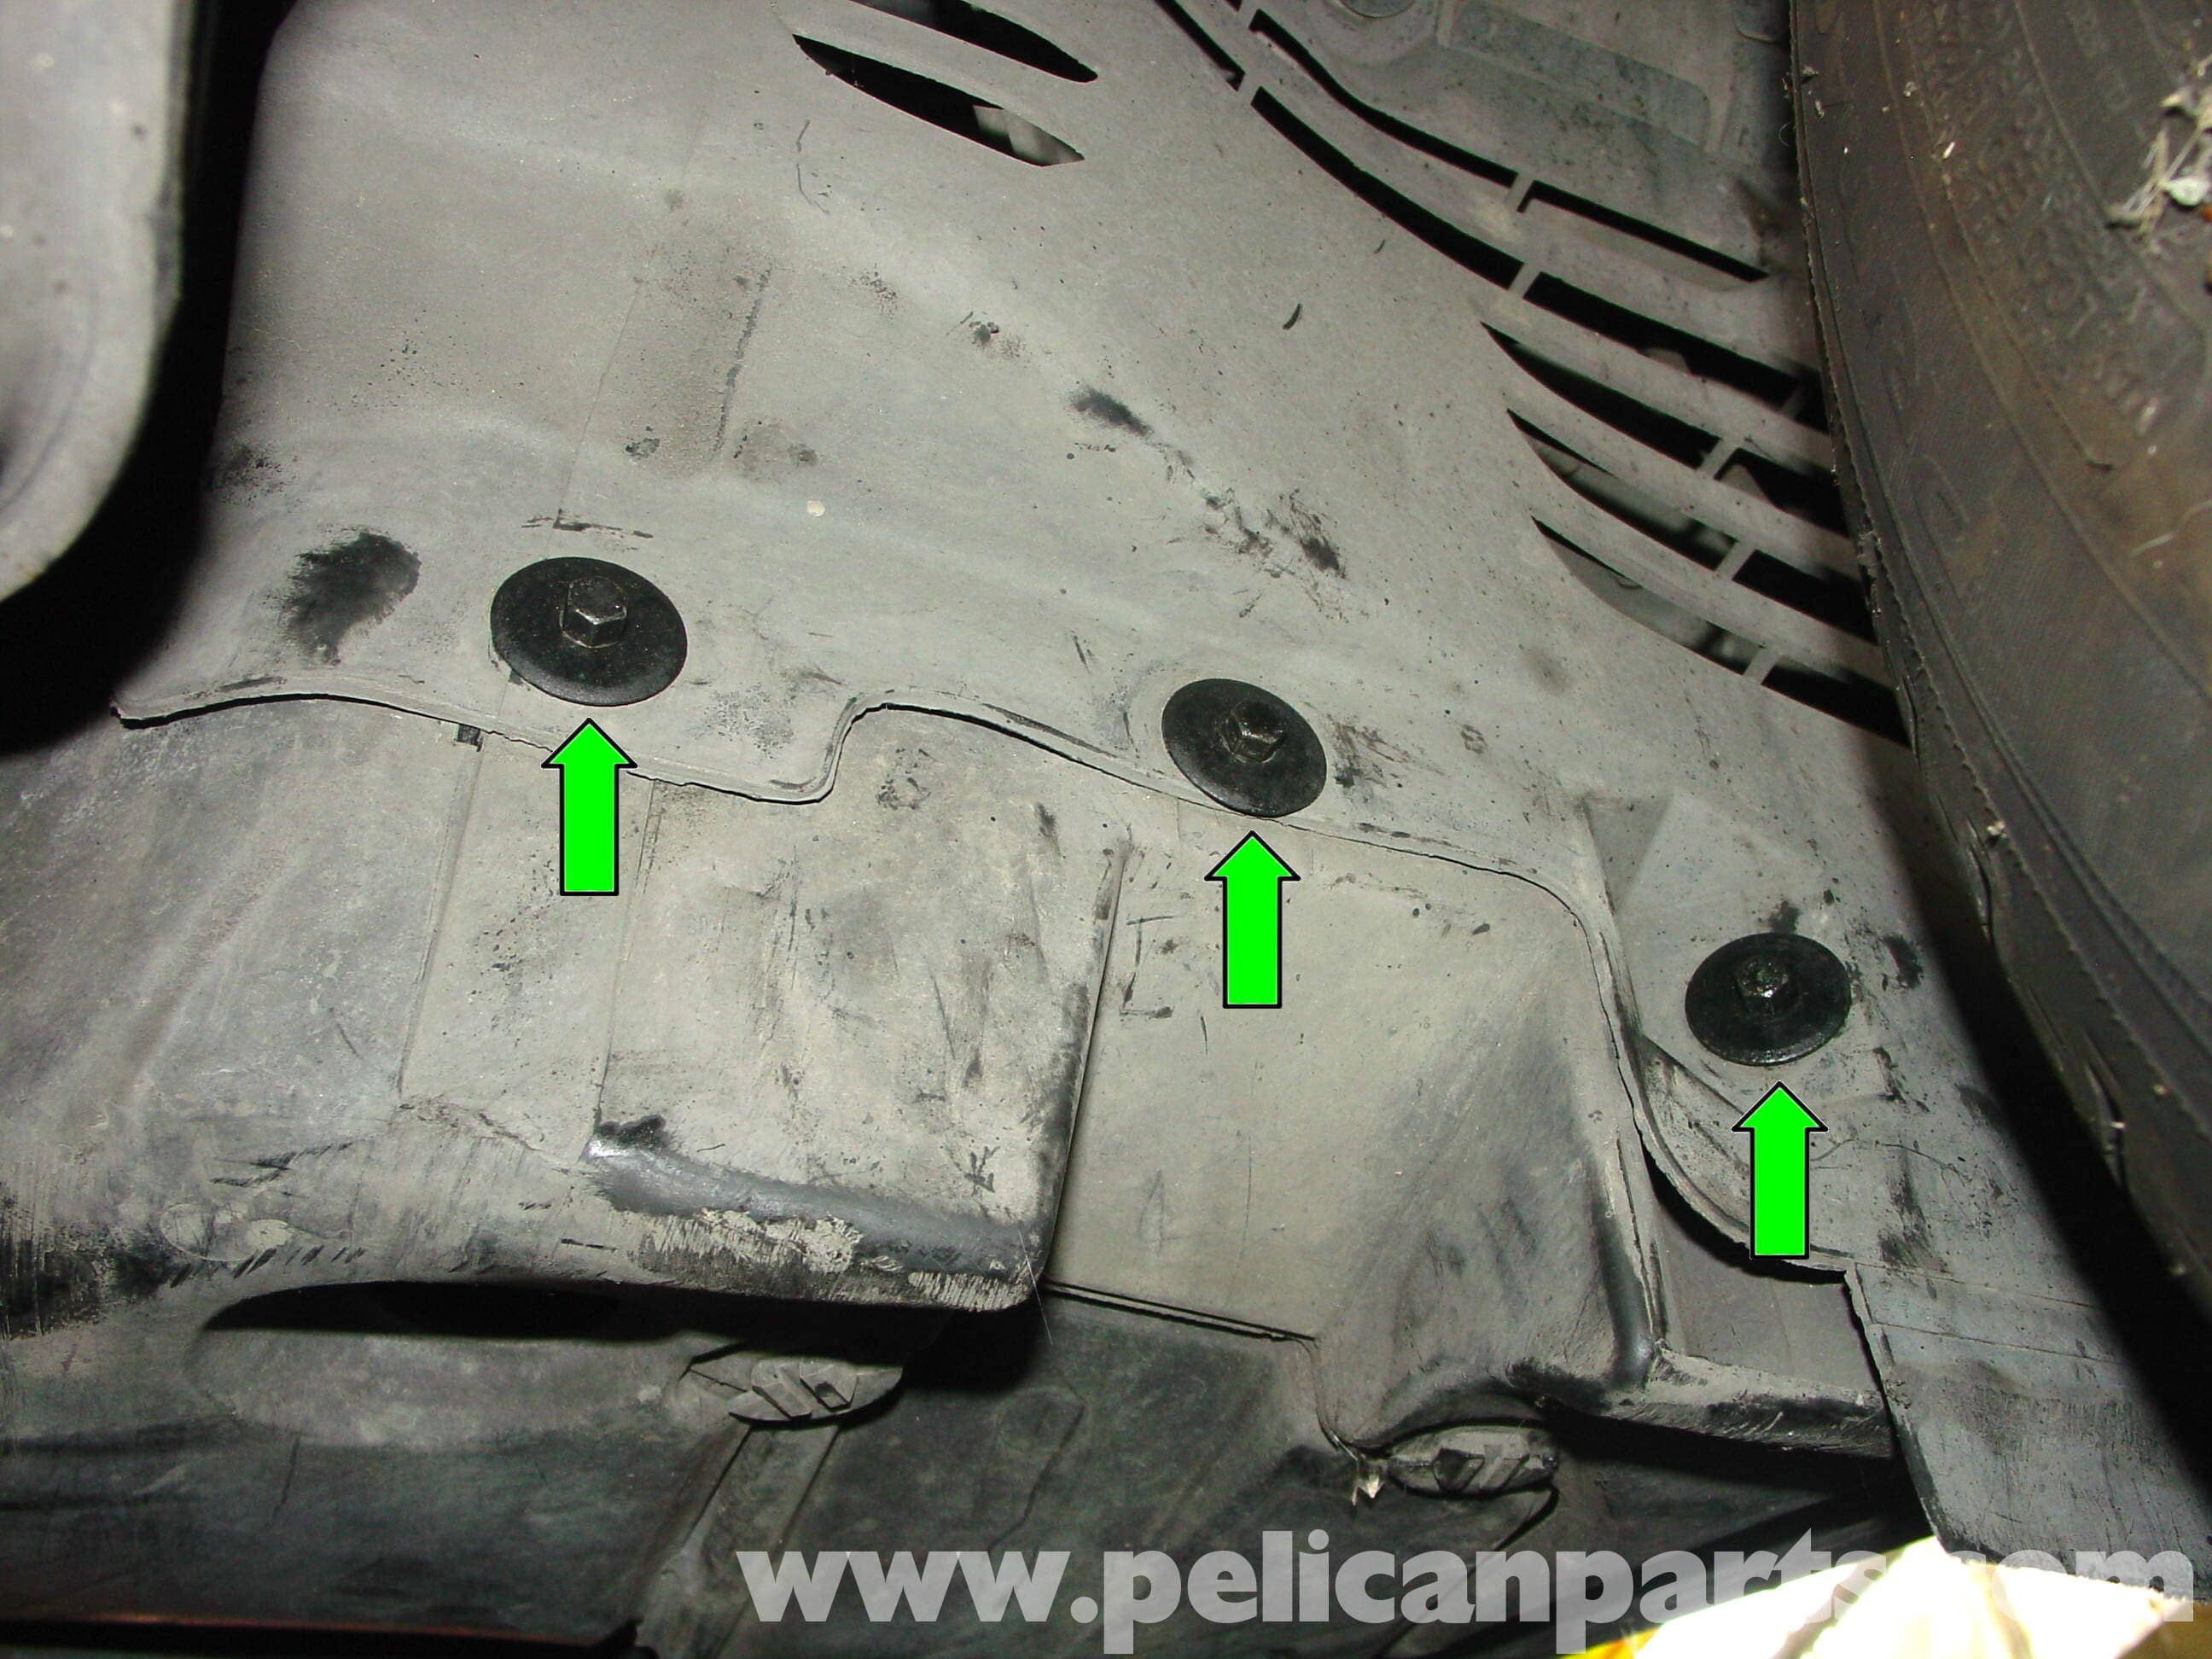 Automatic transmission fluid change pelican parts autos post for Mercedes benz transmission fluid change